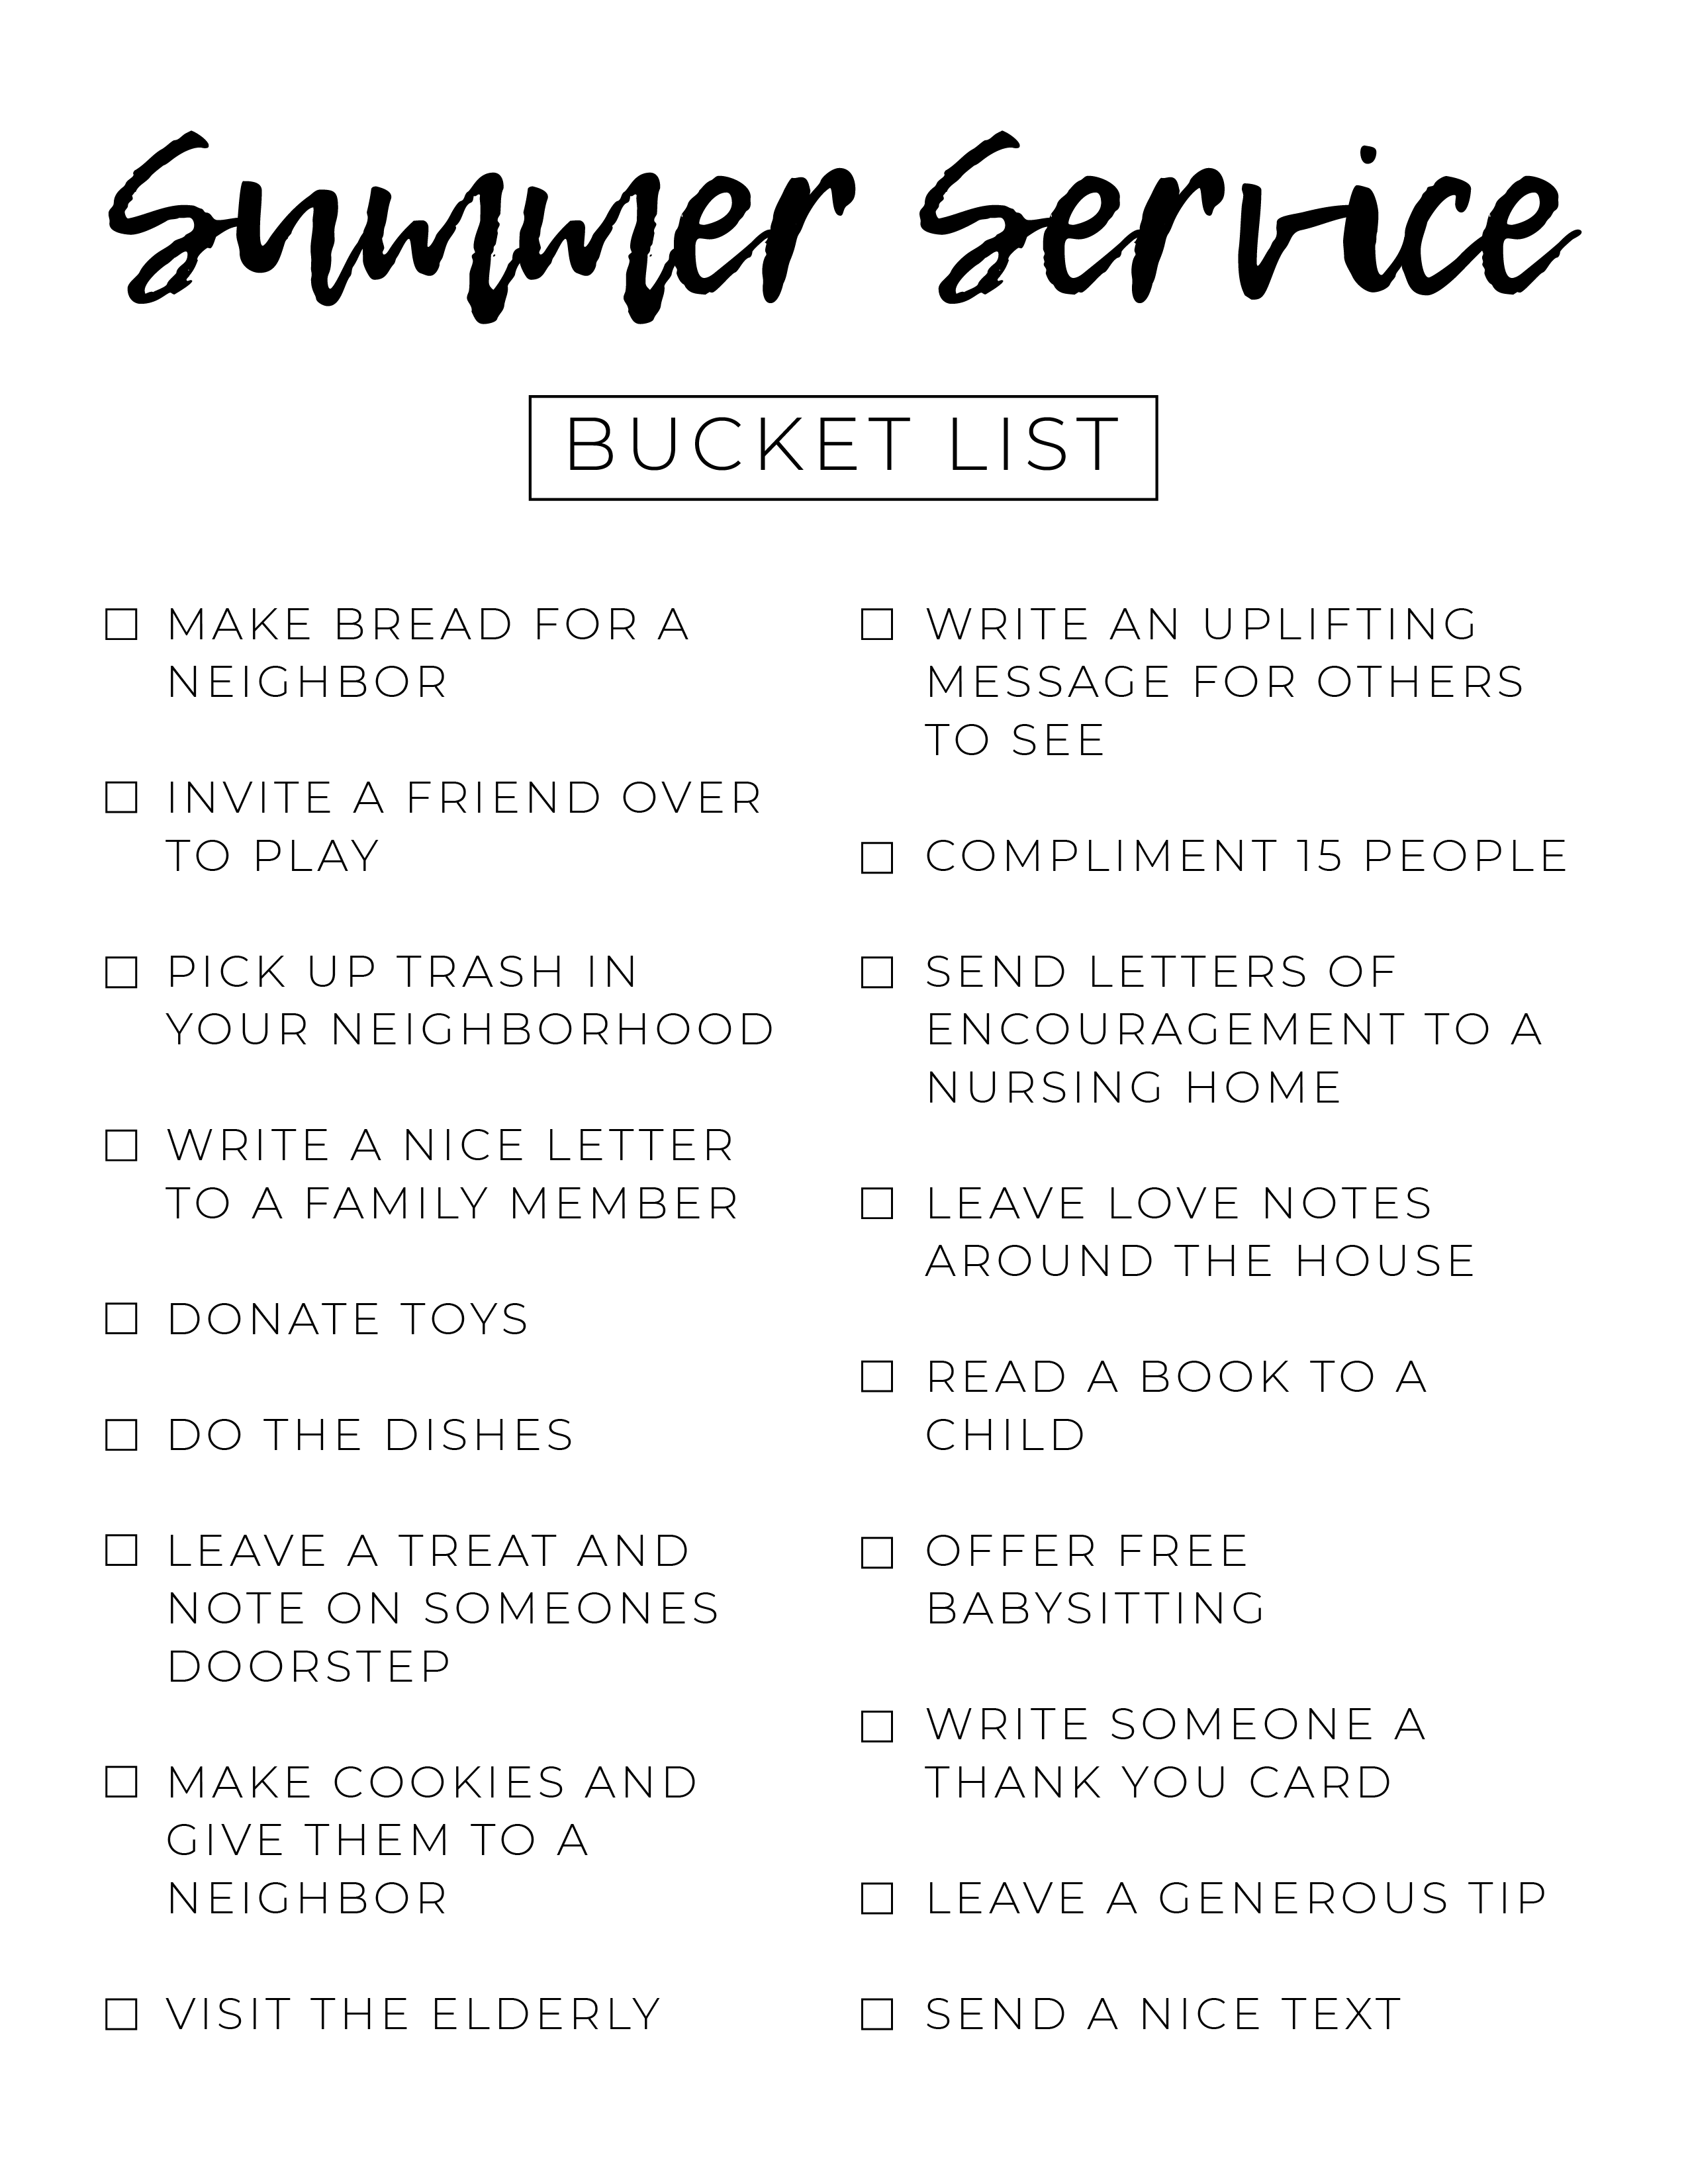 Summer Service Bucket List